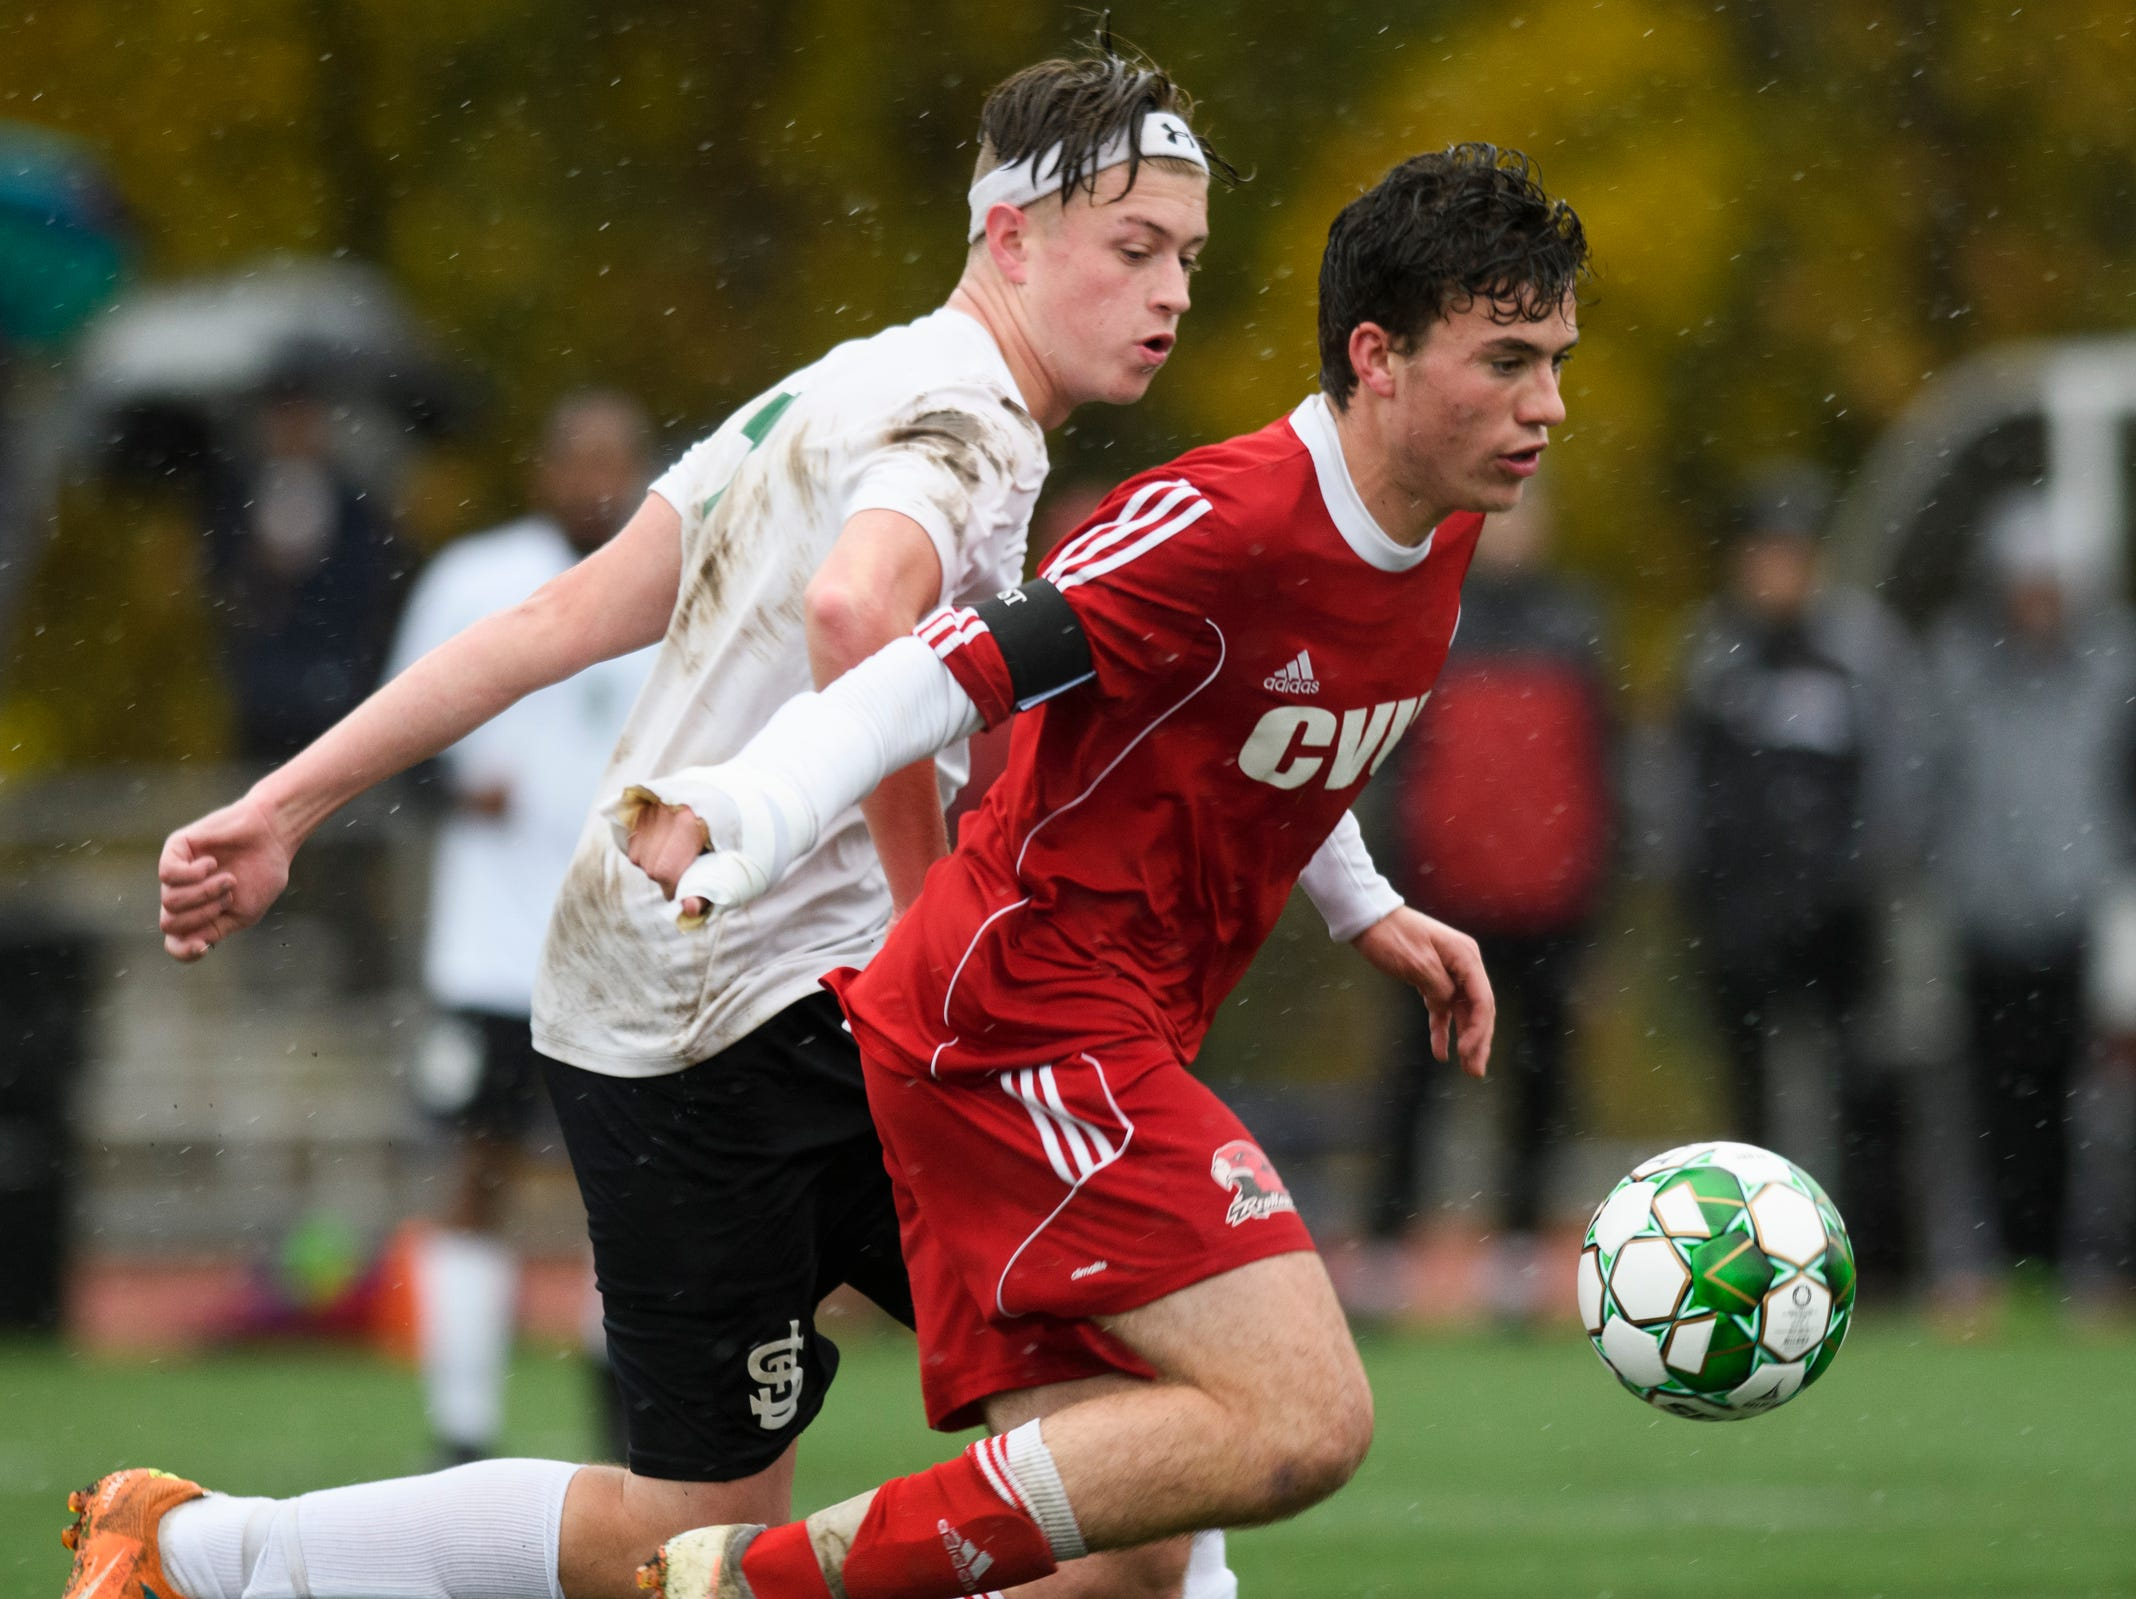 CVU's Jonah Roberts (9) plays the ball past St. Johnsbury's Konard Tillman (7) during the Division I boys soccer championship game between the St. Johnsbury Hilltoppers and the Champlain Valley Union Redhawks at Buck Hard Field on Saturday morning November 3, 2018 in Burlington.